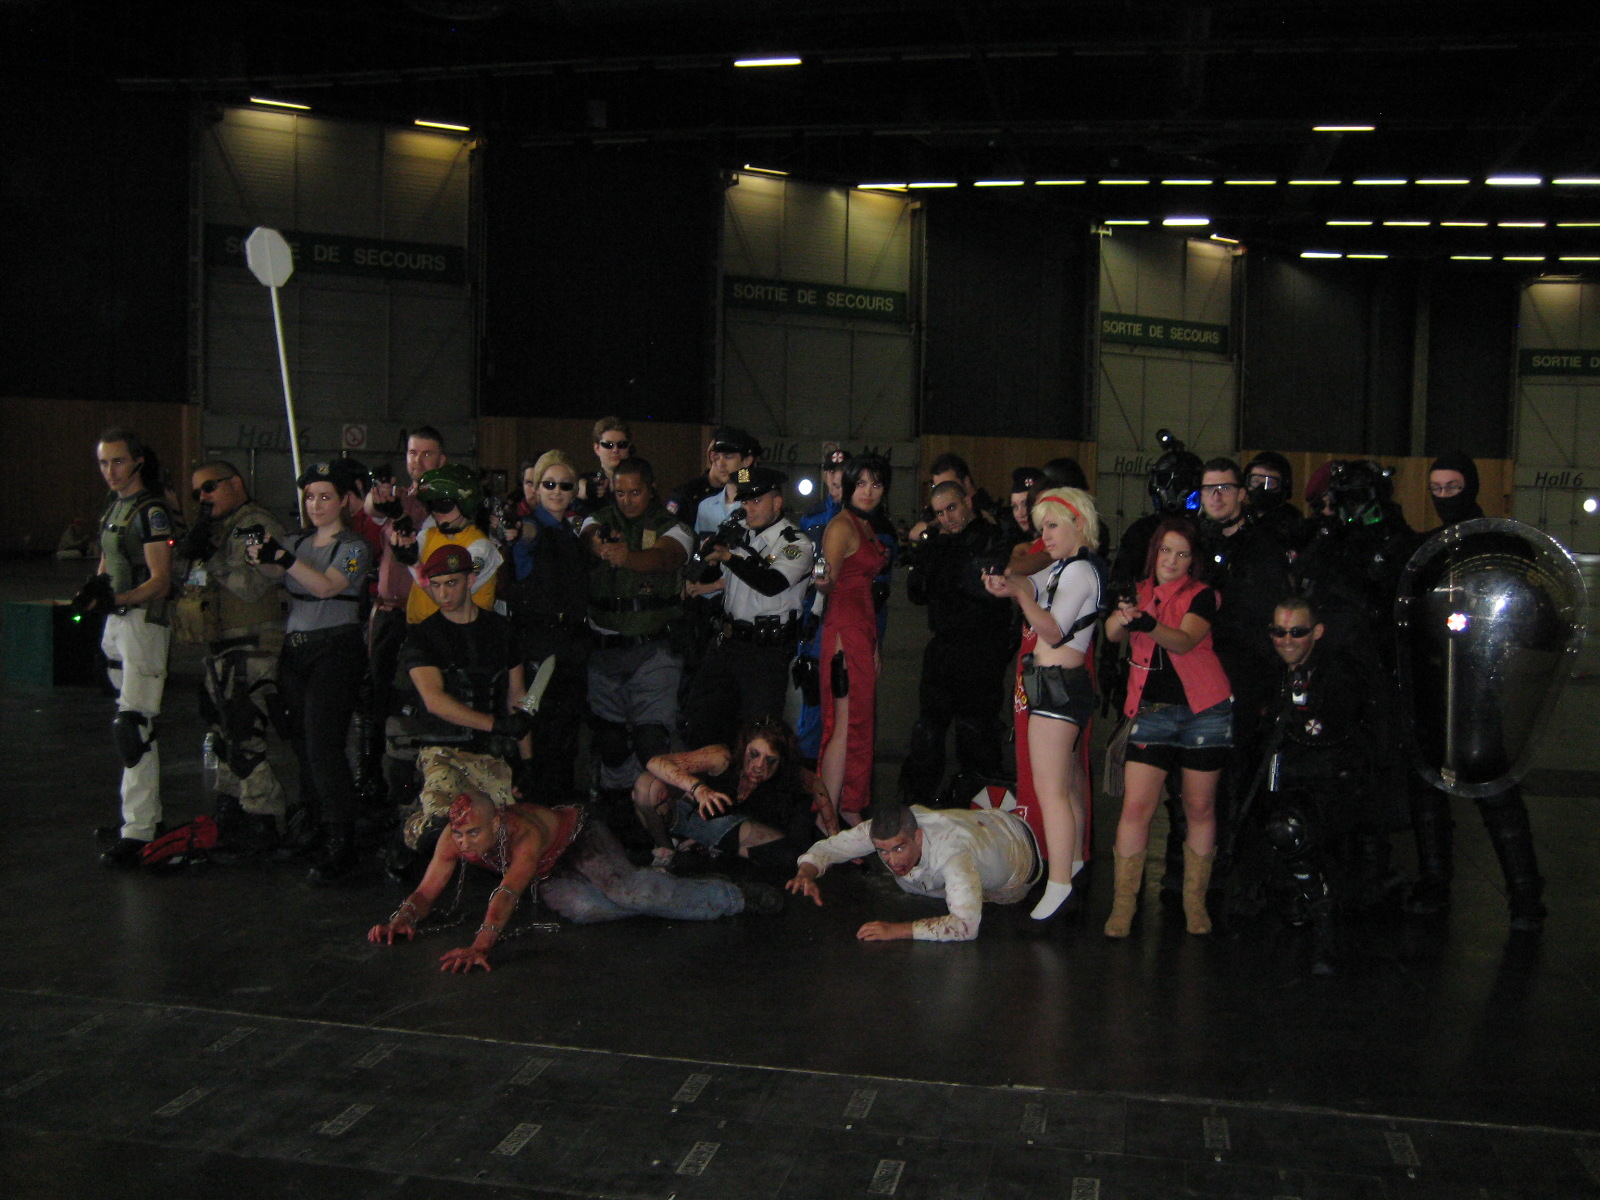 Cosplay Resident Evil japan expo 2014